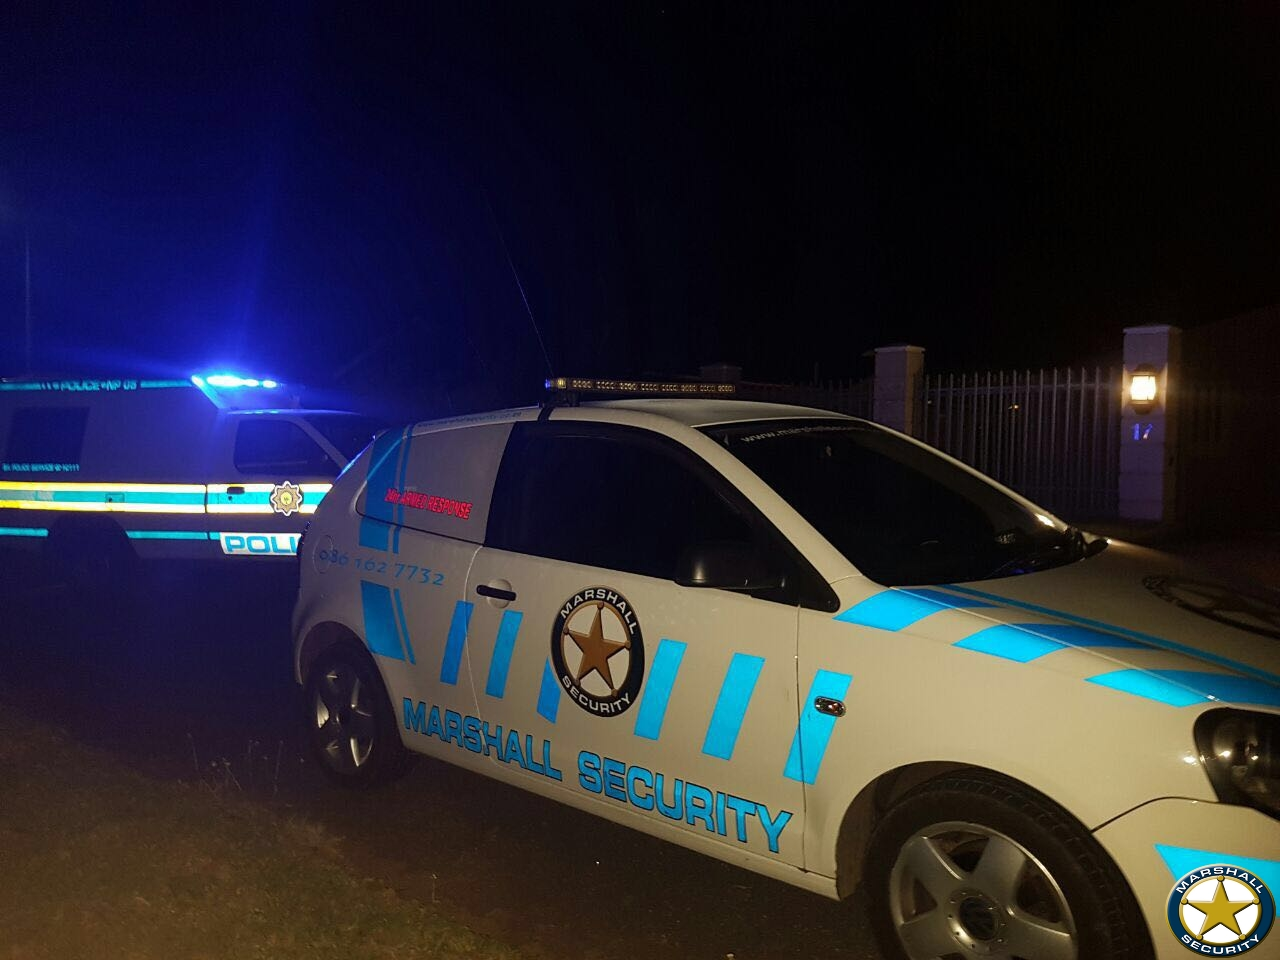 Armed Robbery / Attempted Murder - Umgeni Park, Durban